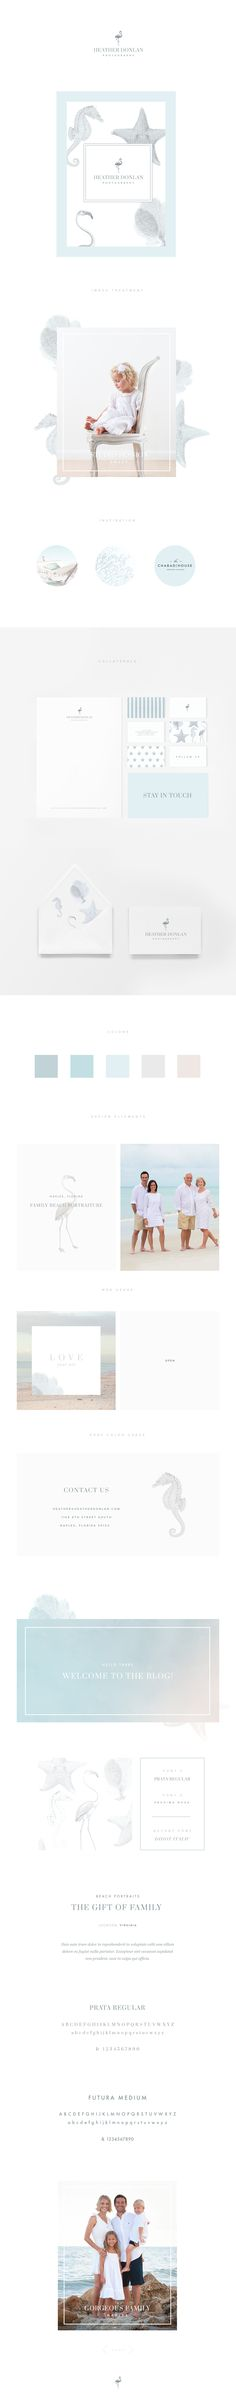 Brand Identity for Heather Donlan Photography. Love Your Art.